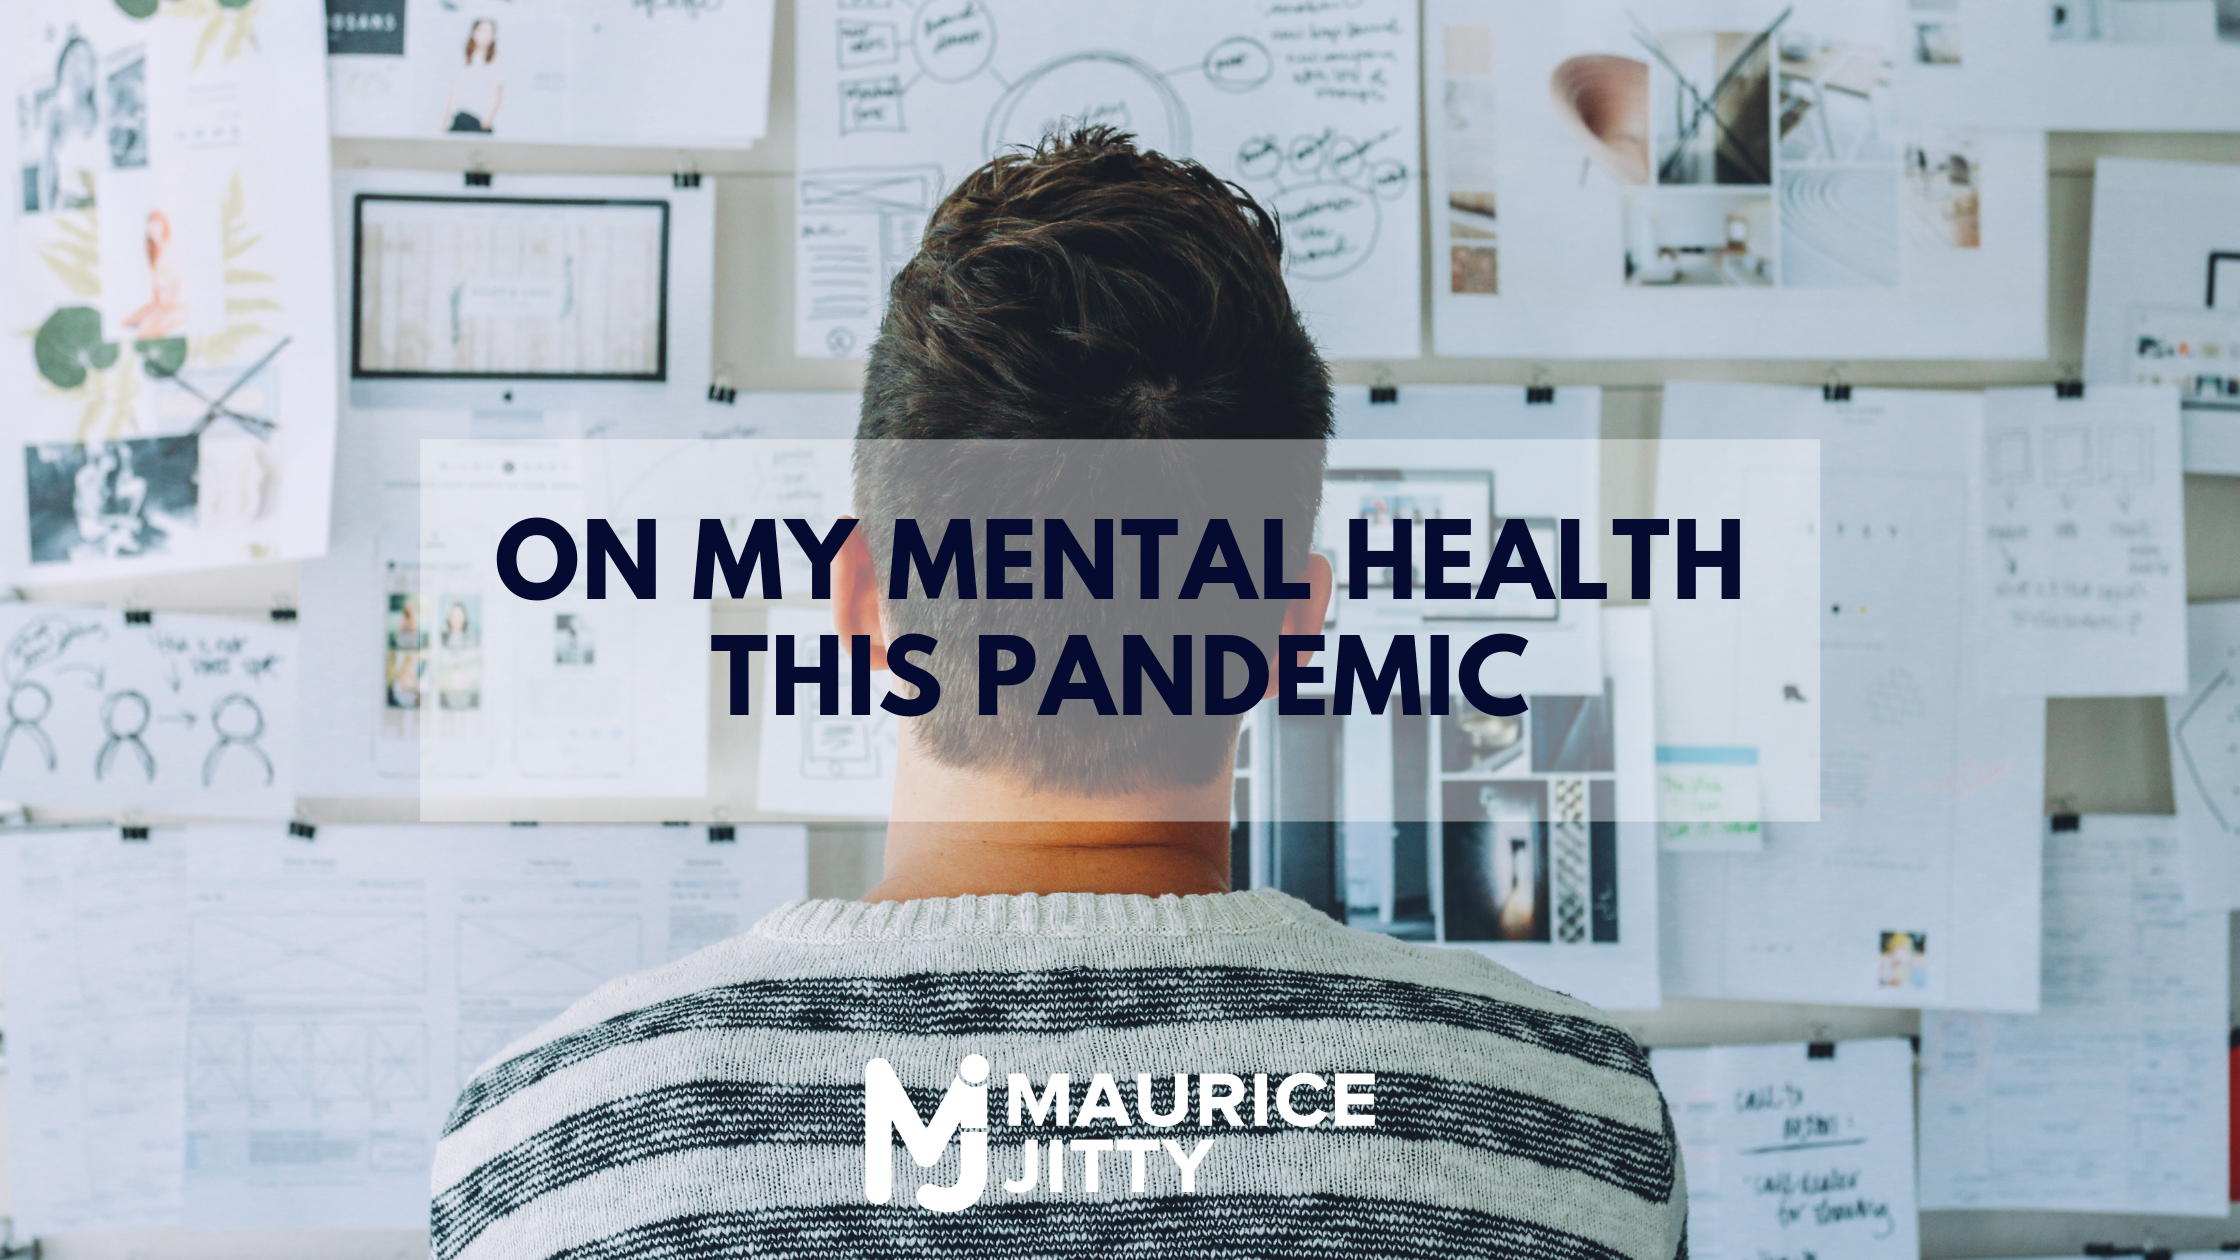 On my mental health this pandemic